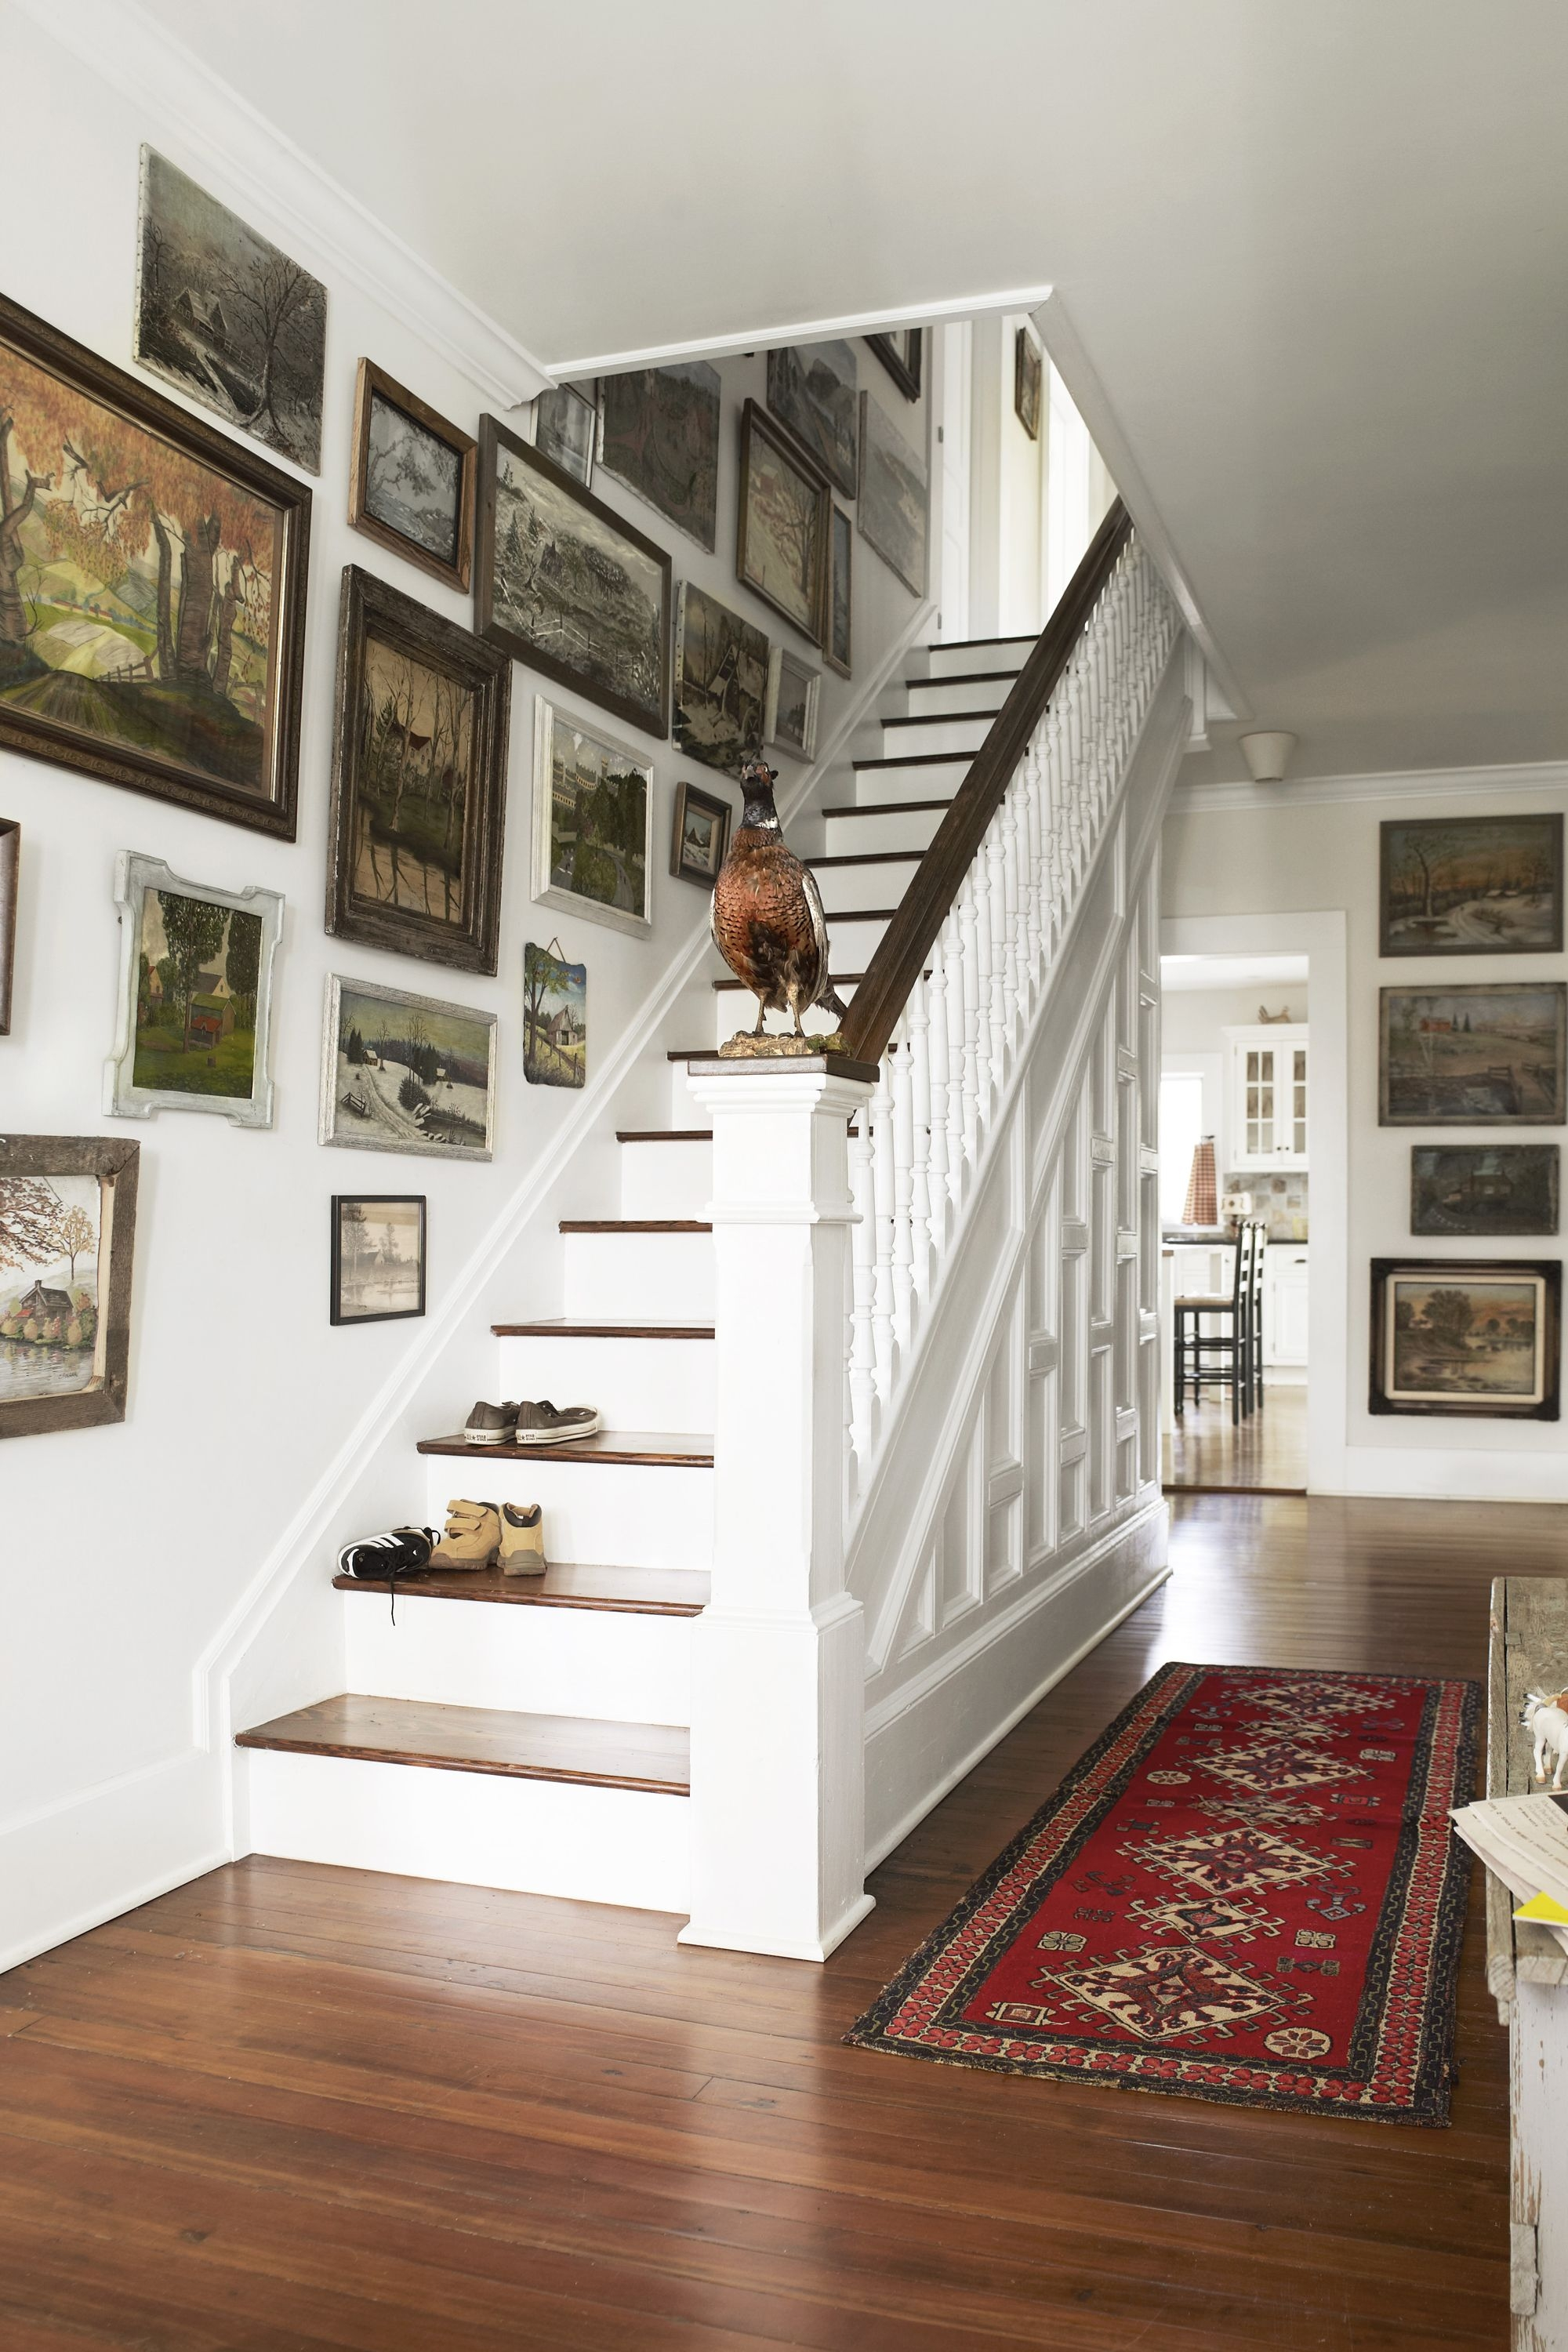 55 Best Staircase Ideas Top Ways To Decorate A Stairway | Designs Of Stairs Inside House | Cool House | Fancy House | House Design Video | House Indoor | Old House